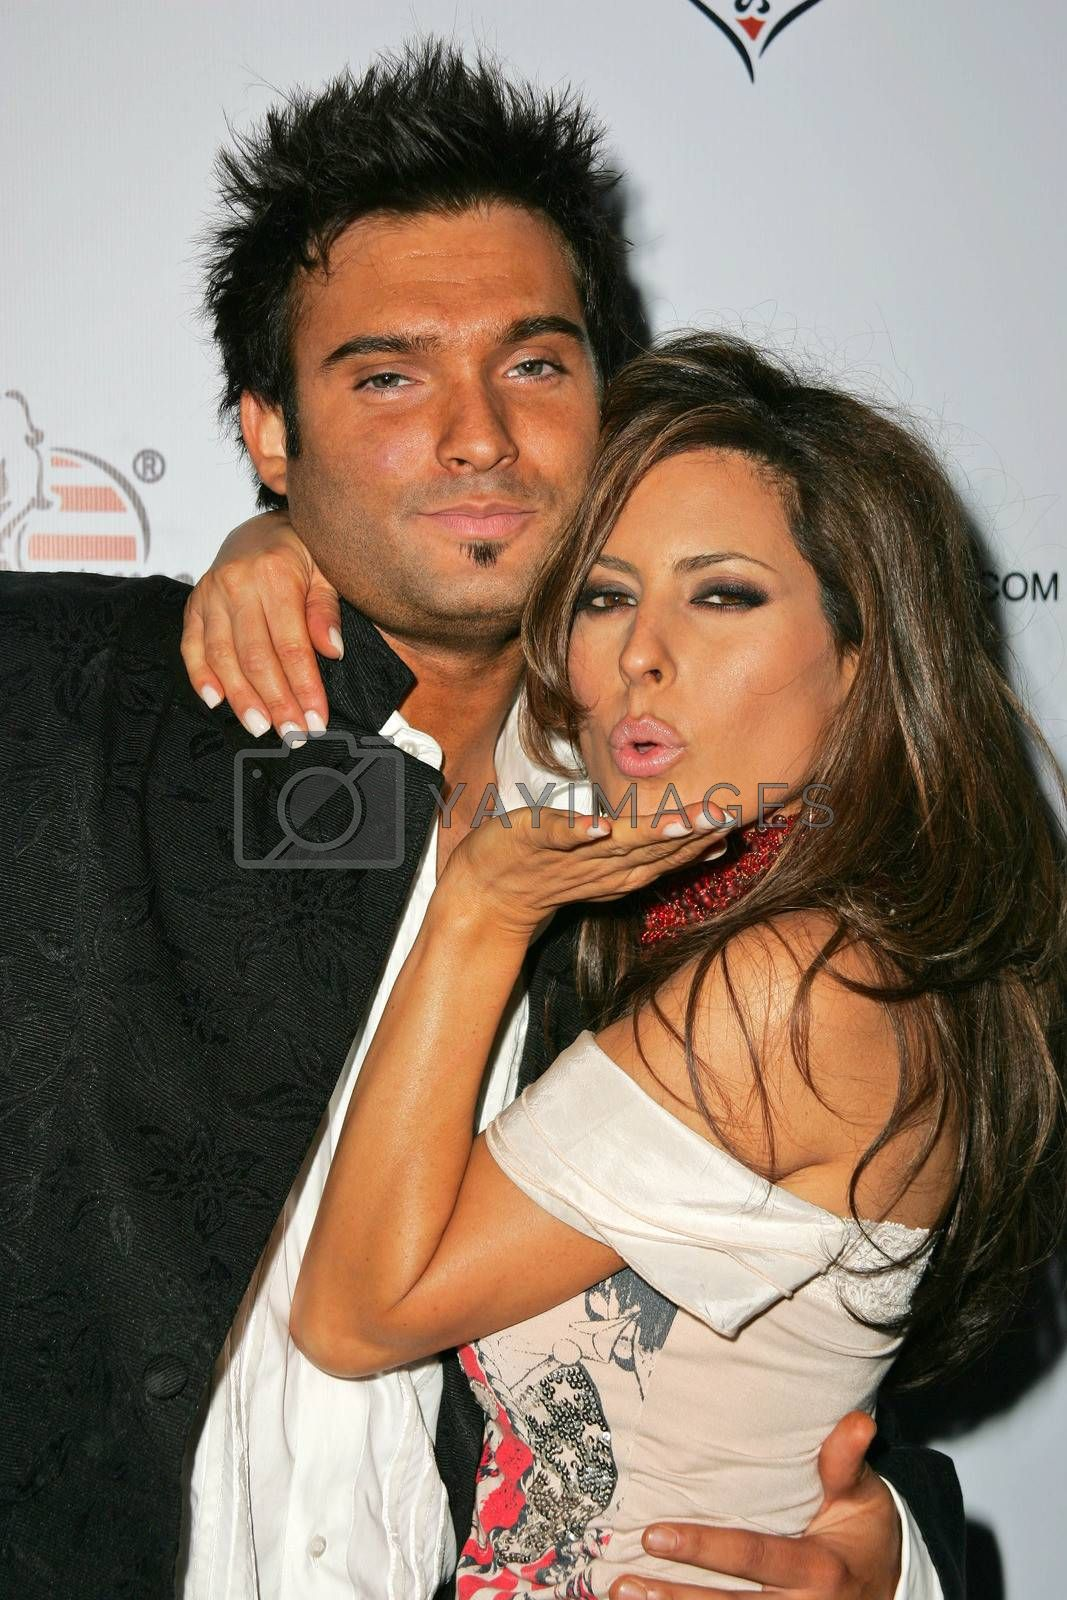 Diego Varas and Kerri Kasem at Bench Warmer's 2nd Annual 4th of July Celebration, The Day After, Hollywood, CA 06-29-05